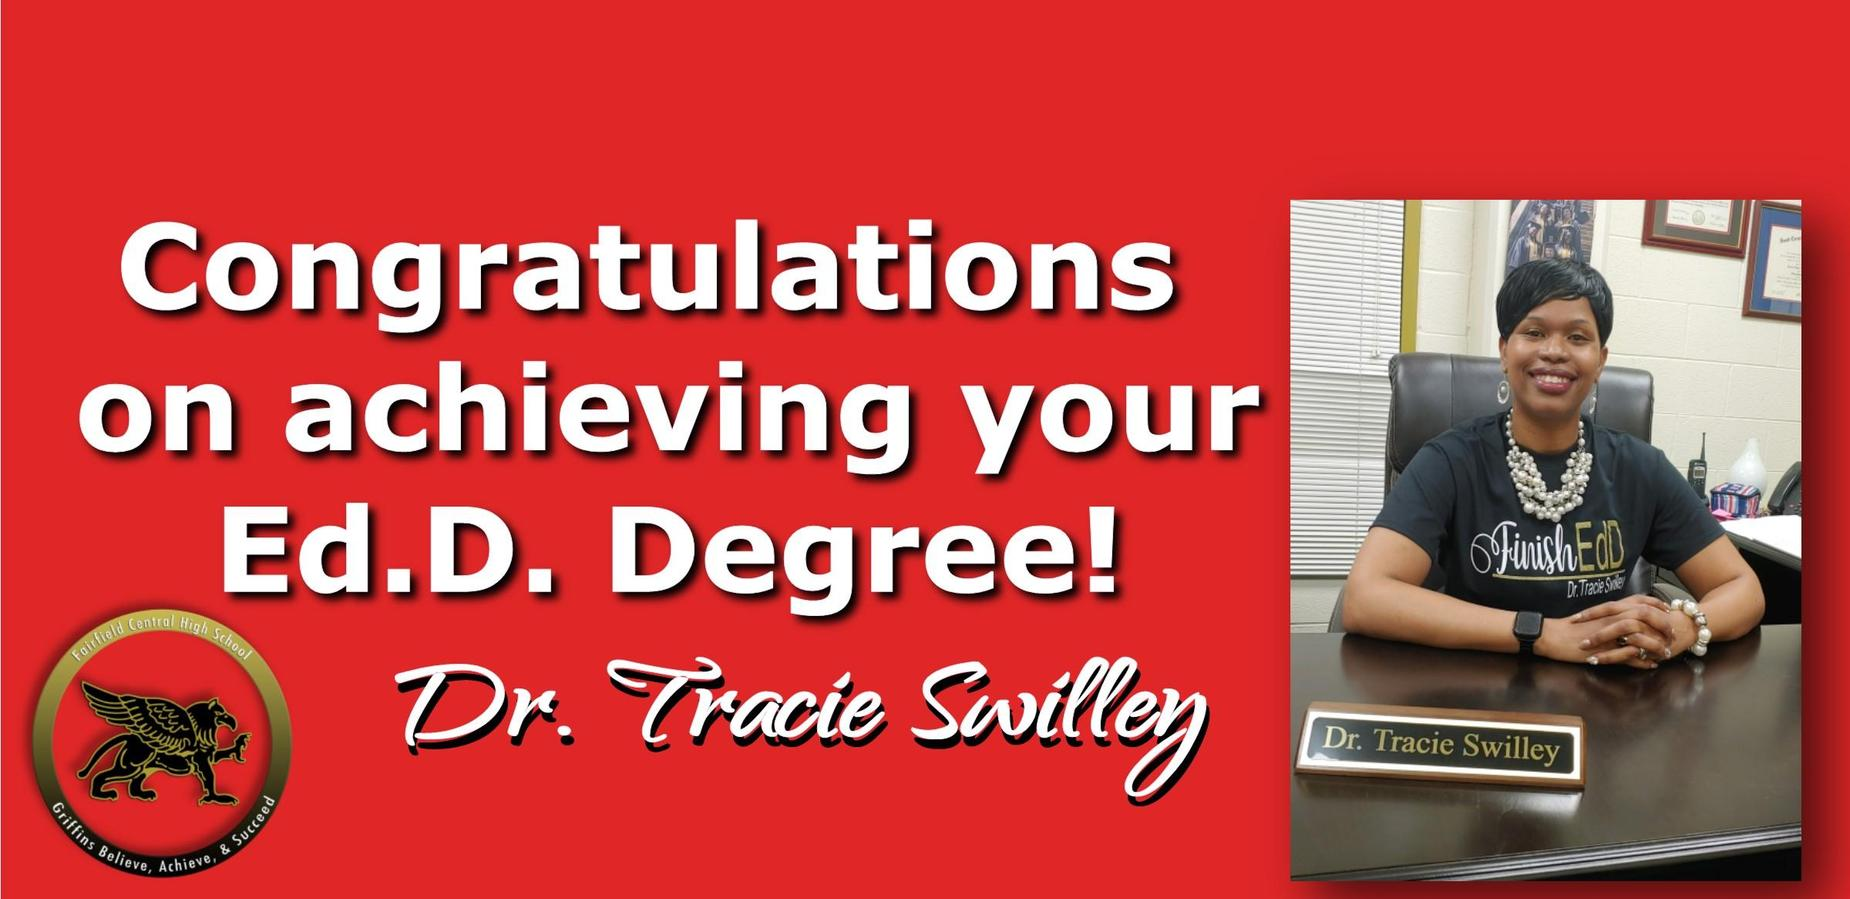 Congrats on achieving your Ed.D. Degree! Dr. Tracie Swilley